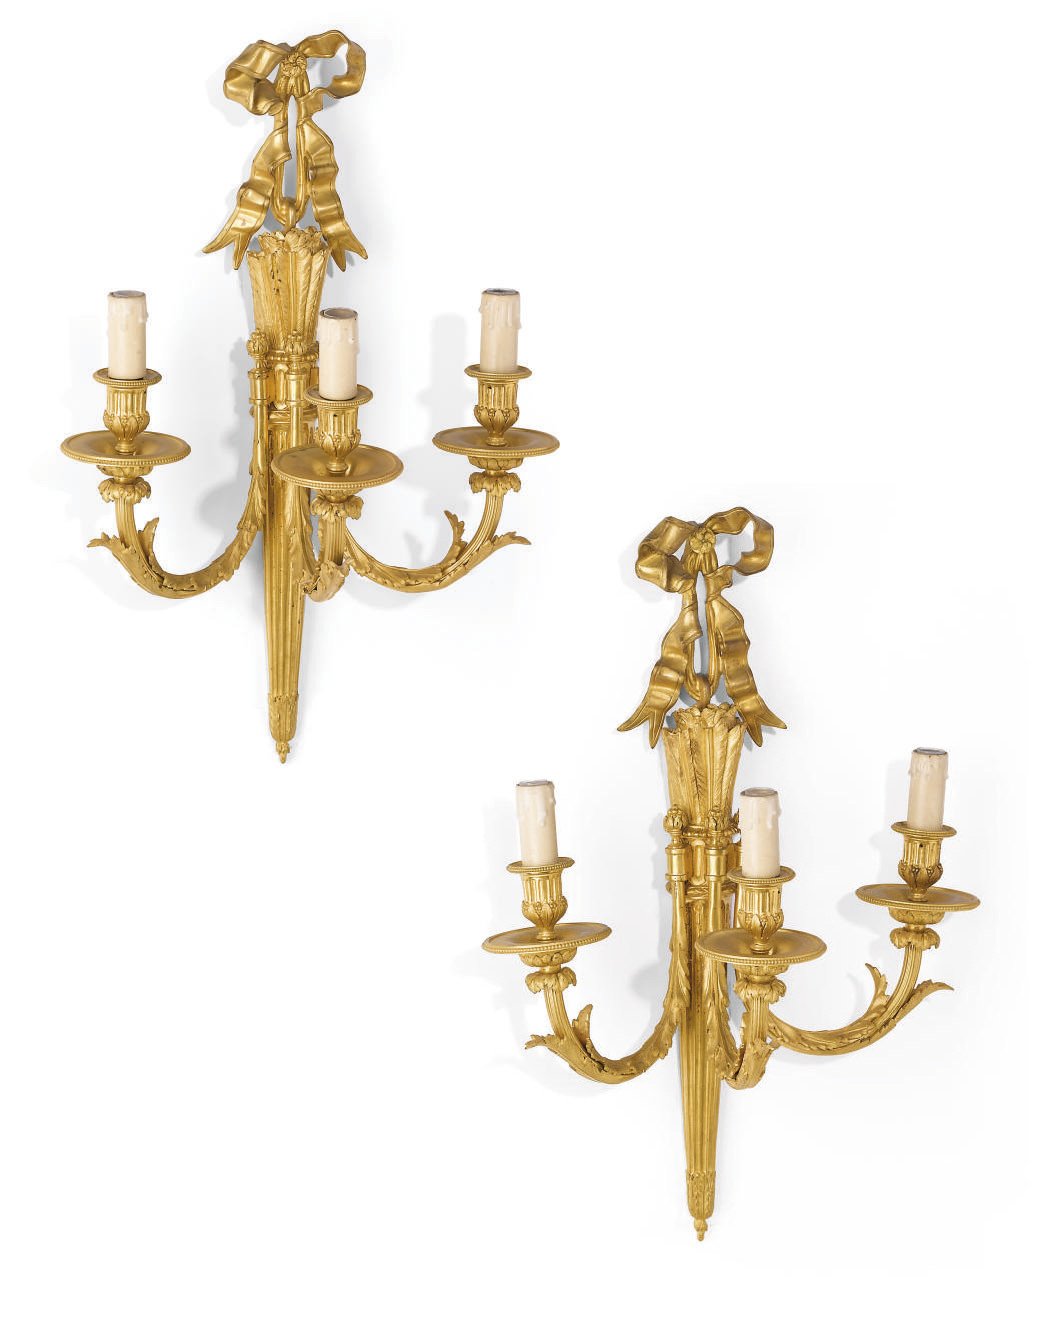 A PAIR OF FRENCH ORMOLU THREE-LIGHT WALL APPLIQUES